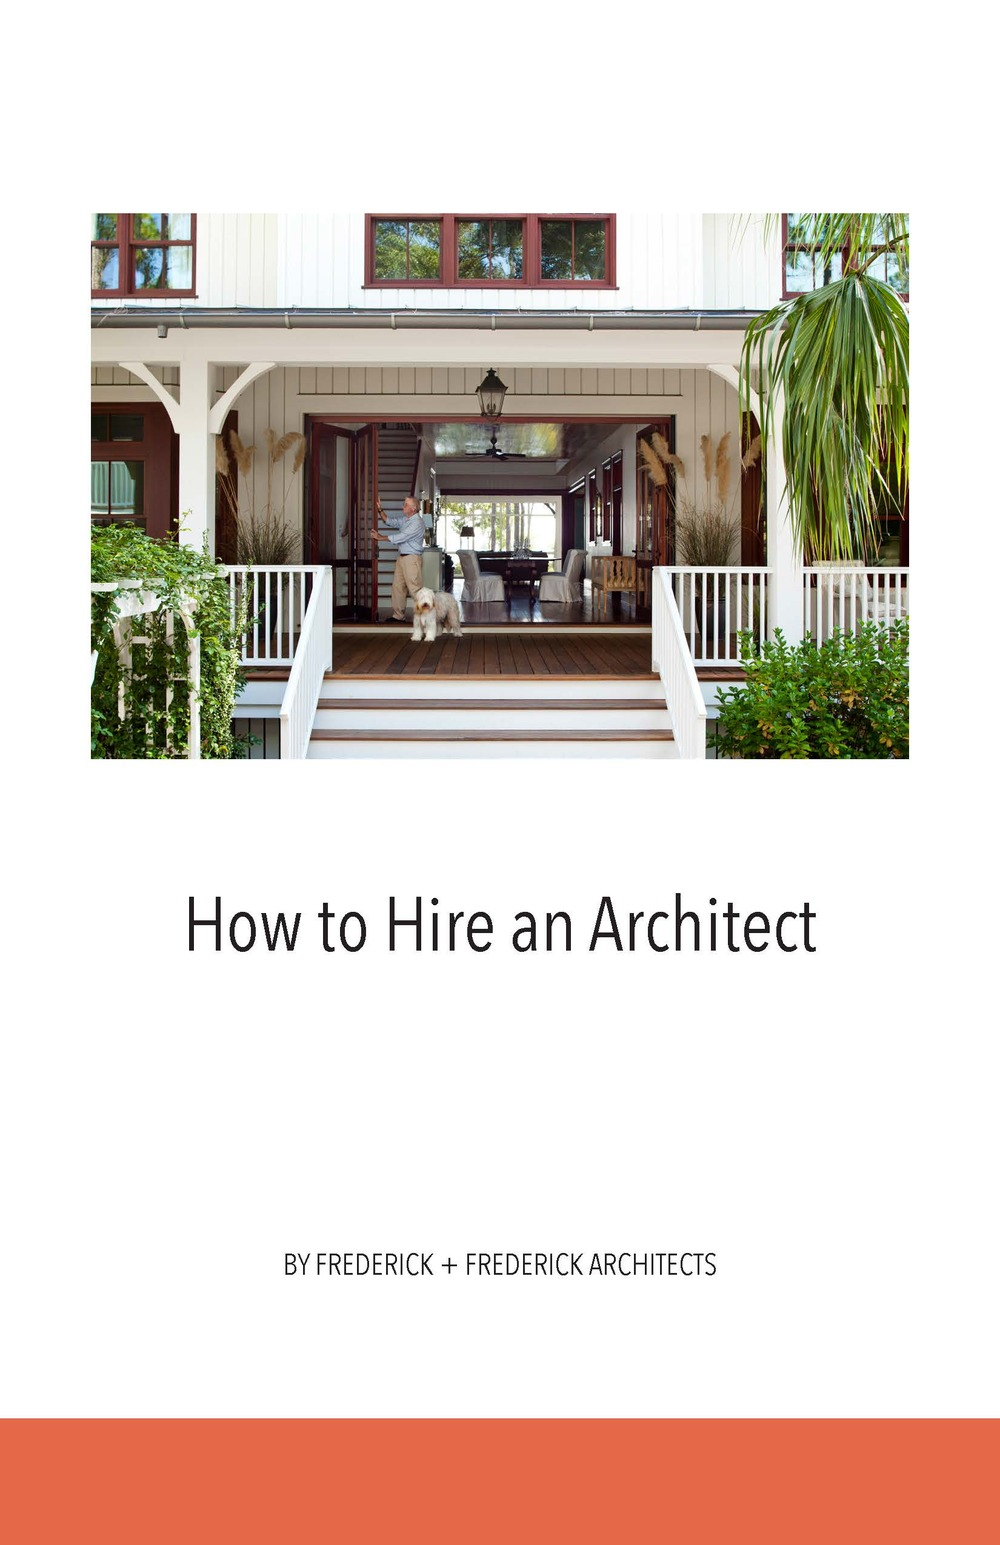 Register  here  for your free copy of How to Hire an Architect